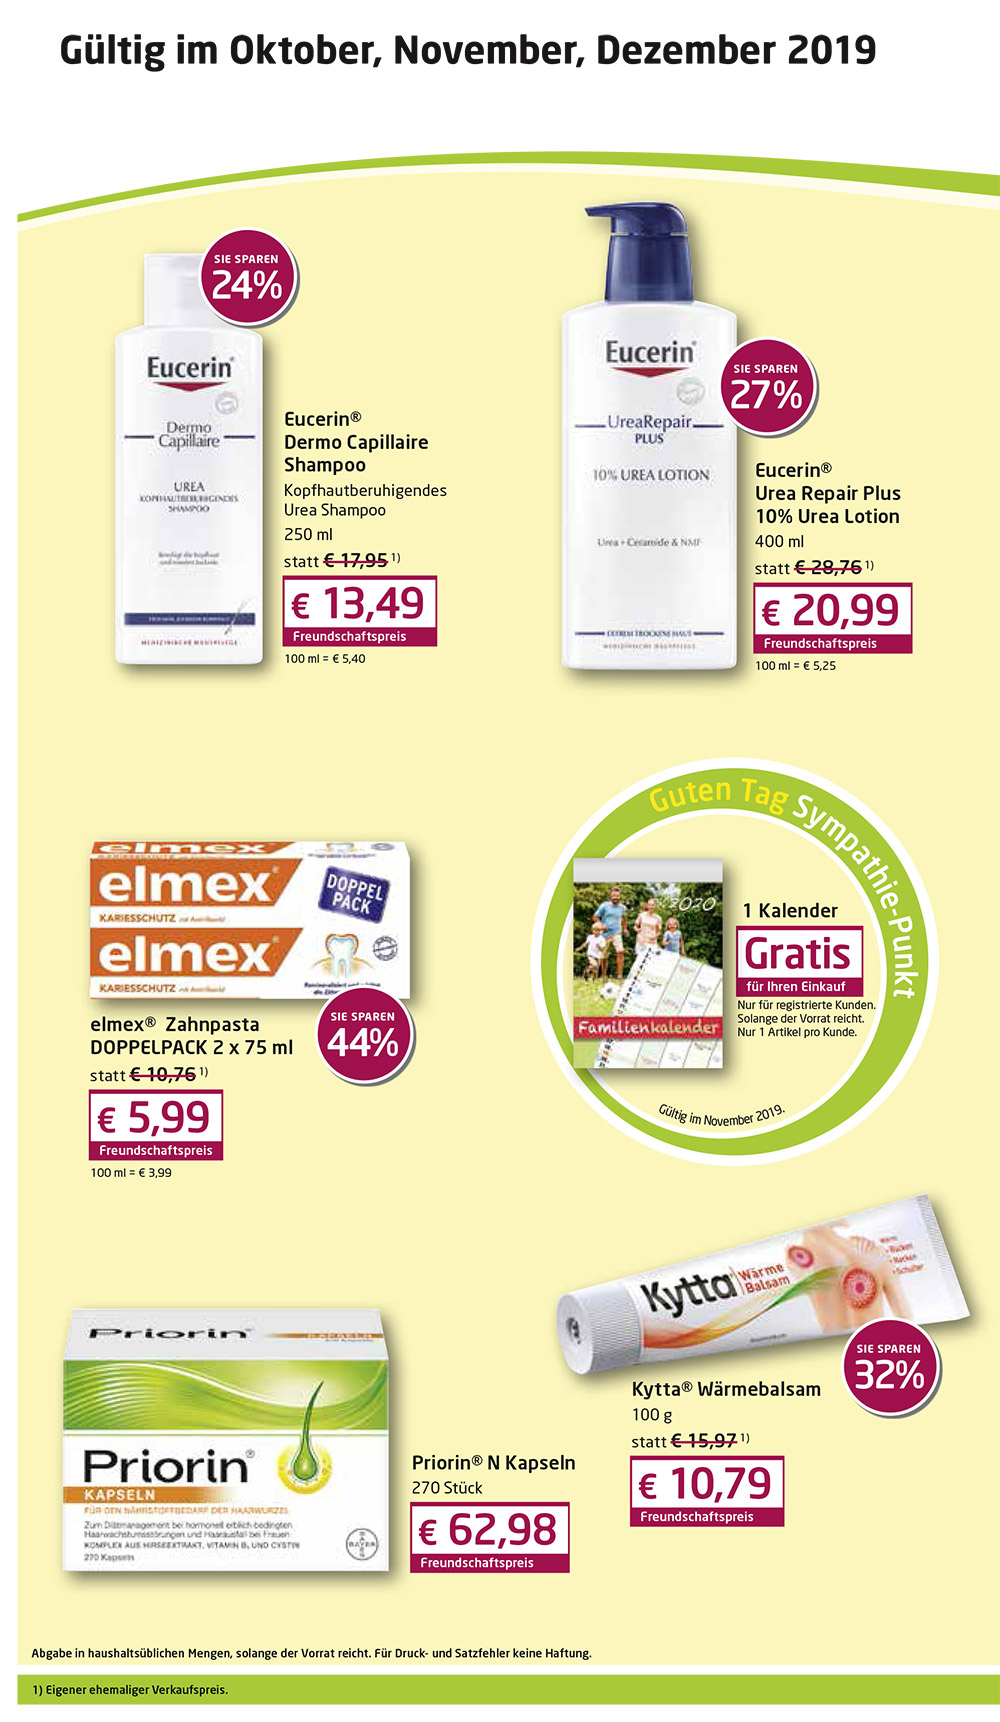 https://portal.apotheken.de/fileadmin/clubarea/00000-Angebote/40880_fortuna_angebot_2.jpg